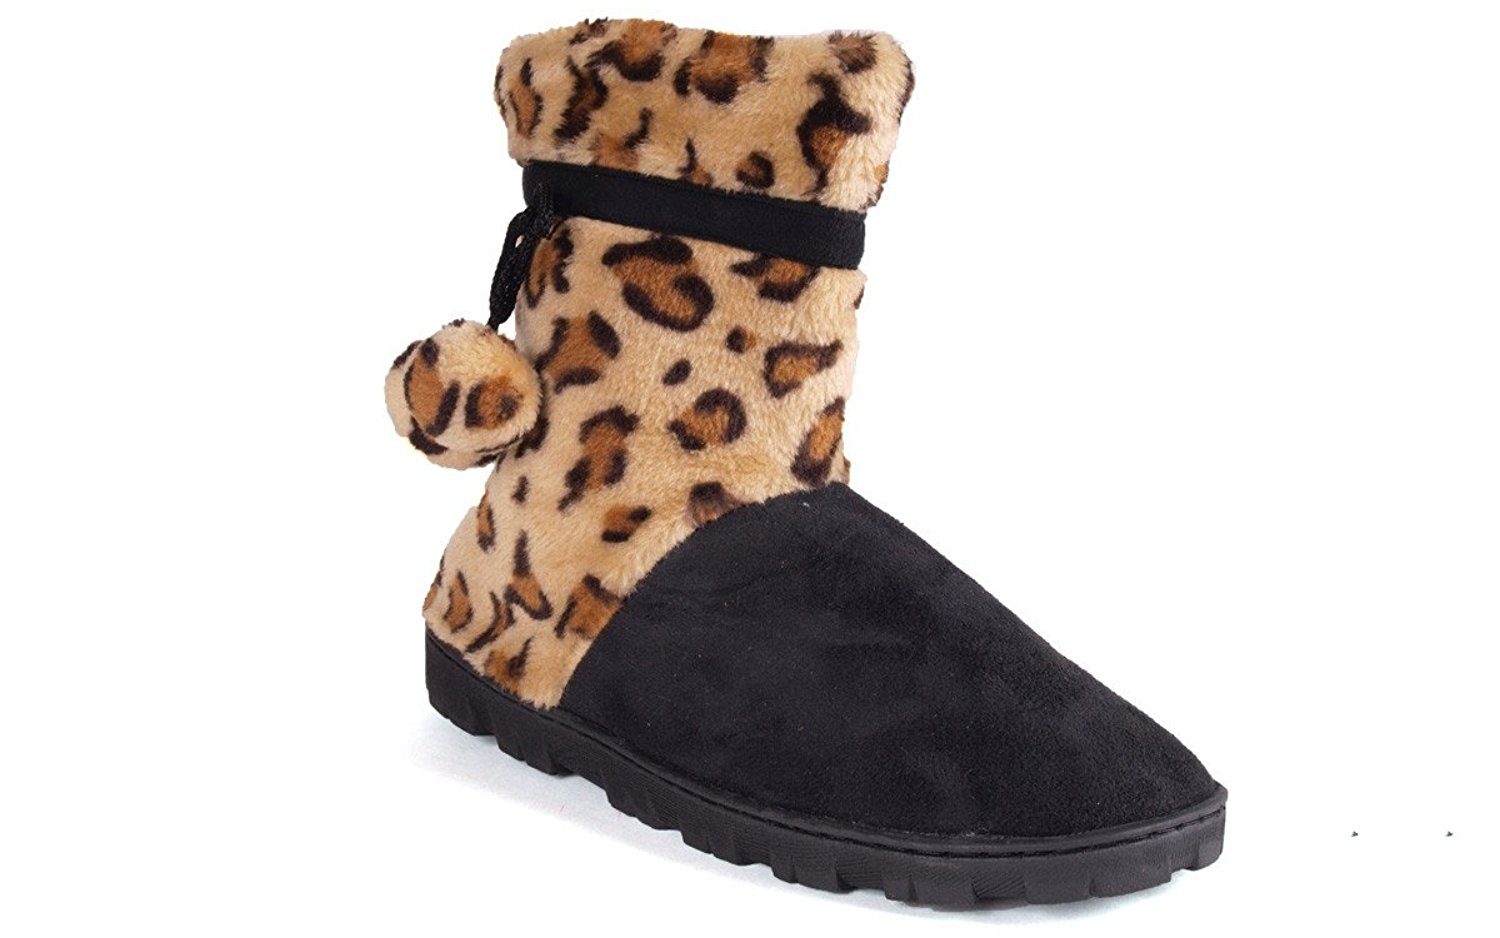 ee7d4663aec327 Get Quotations · Happy Feet - Leopard and Black Micro Boot - Snooki Slippers